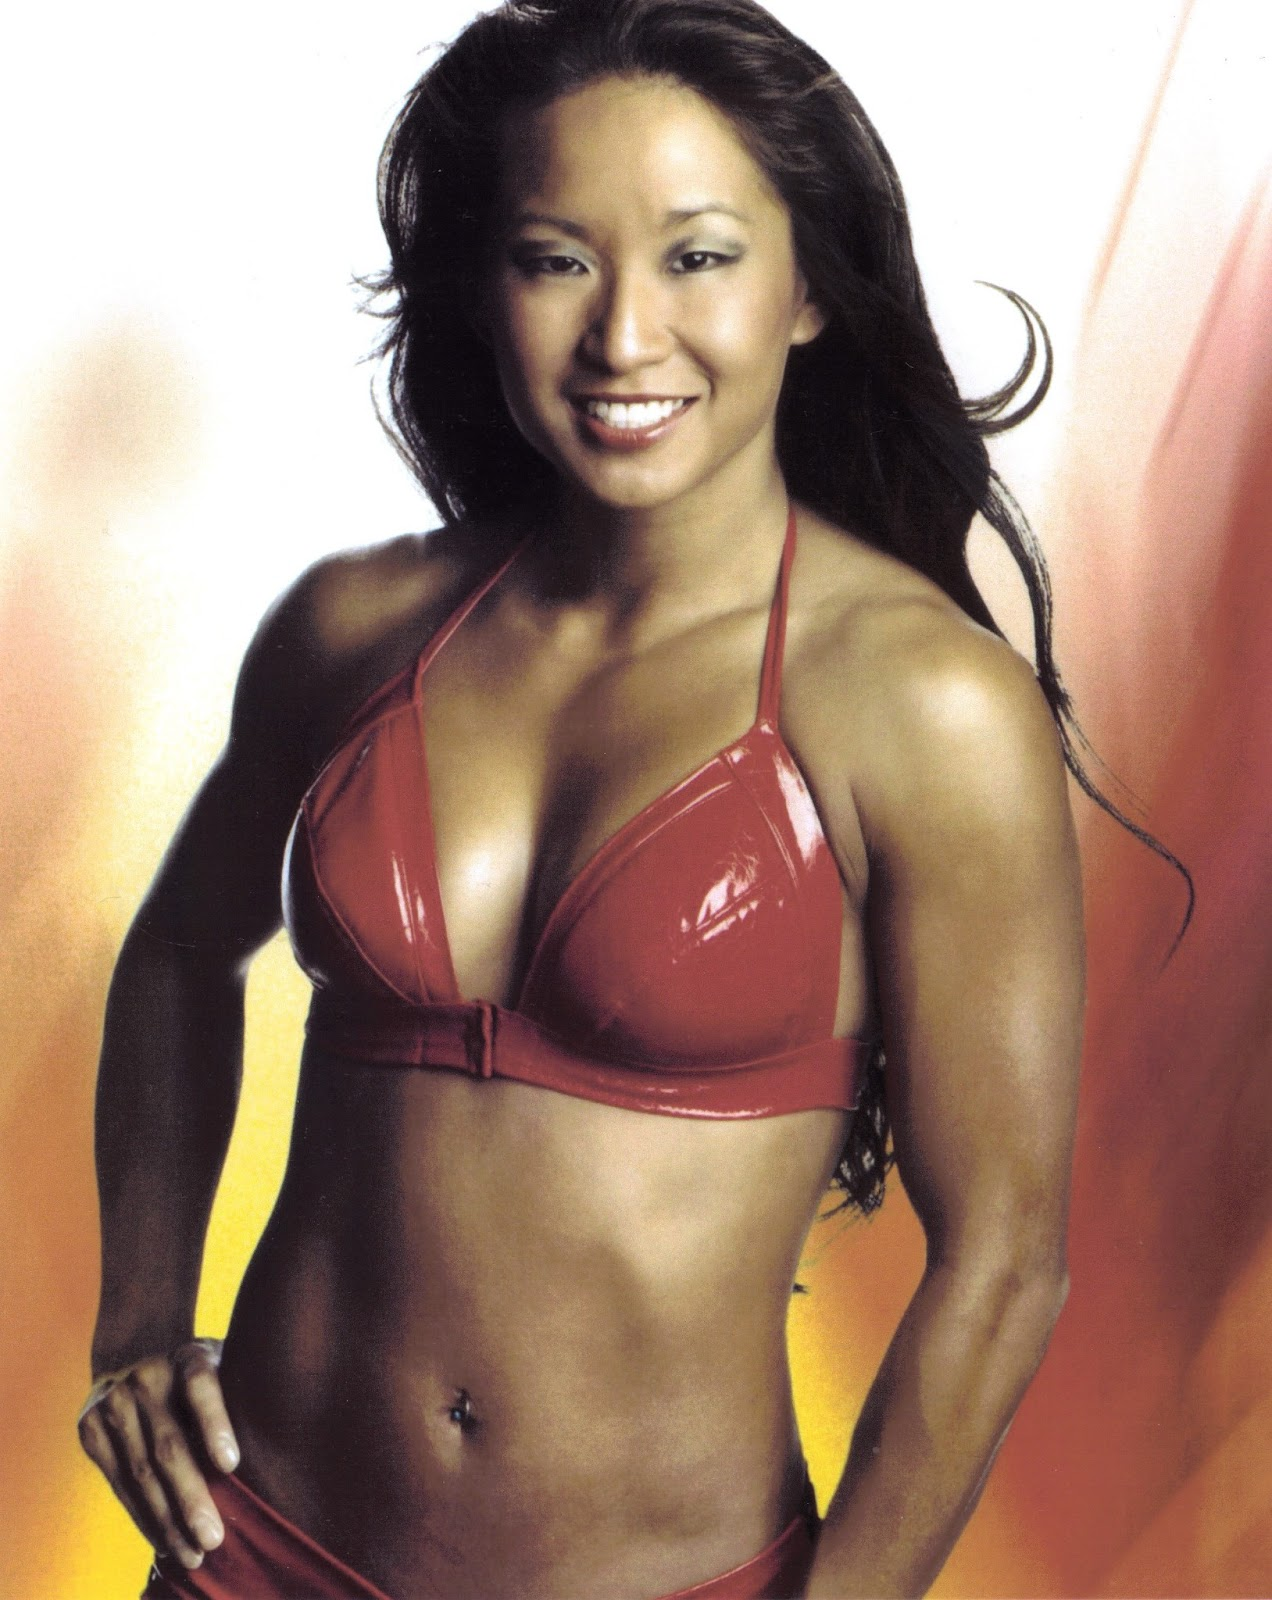 Gail kim hot photos Top 15 Hot Photos Of Gail Kim You NEED To See TheSportster